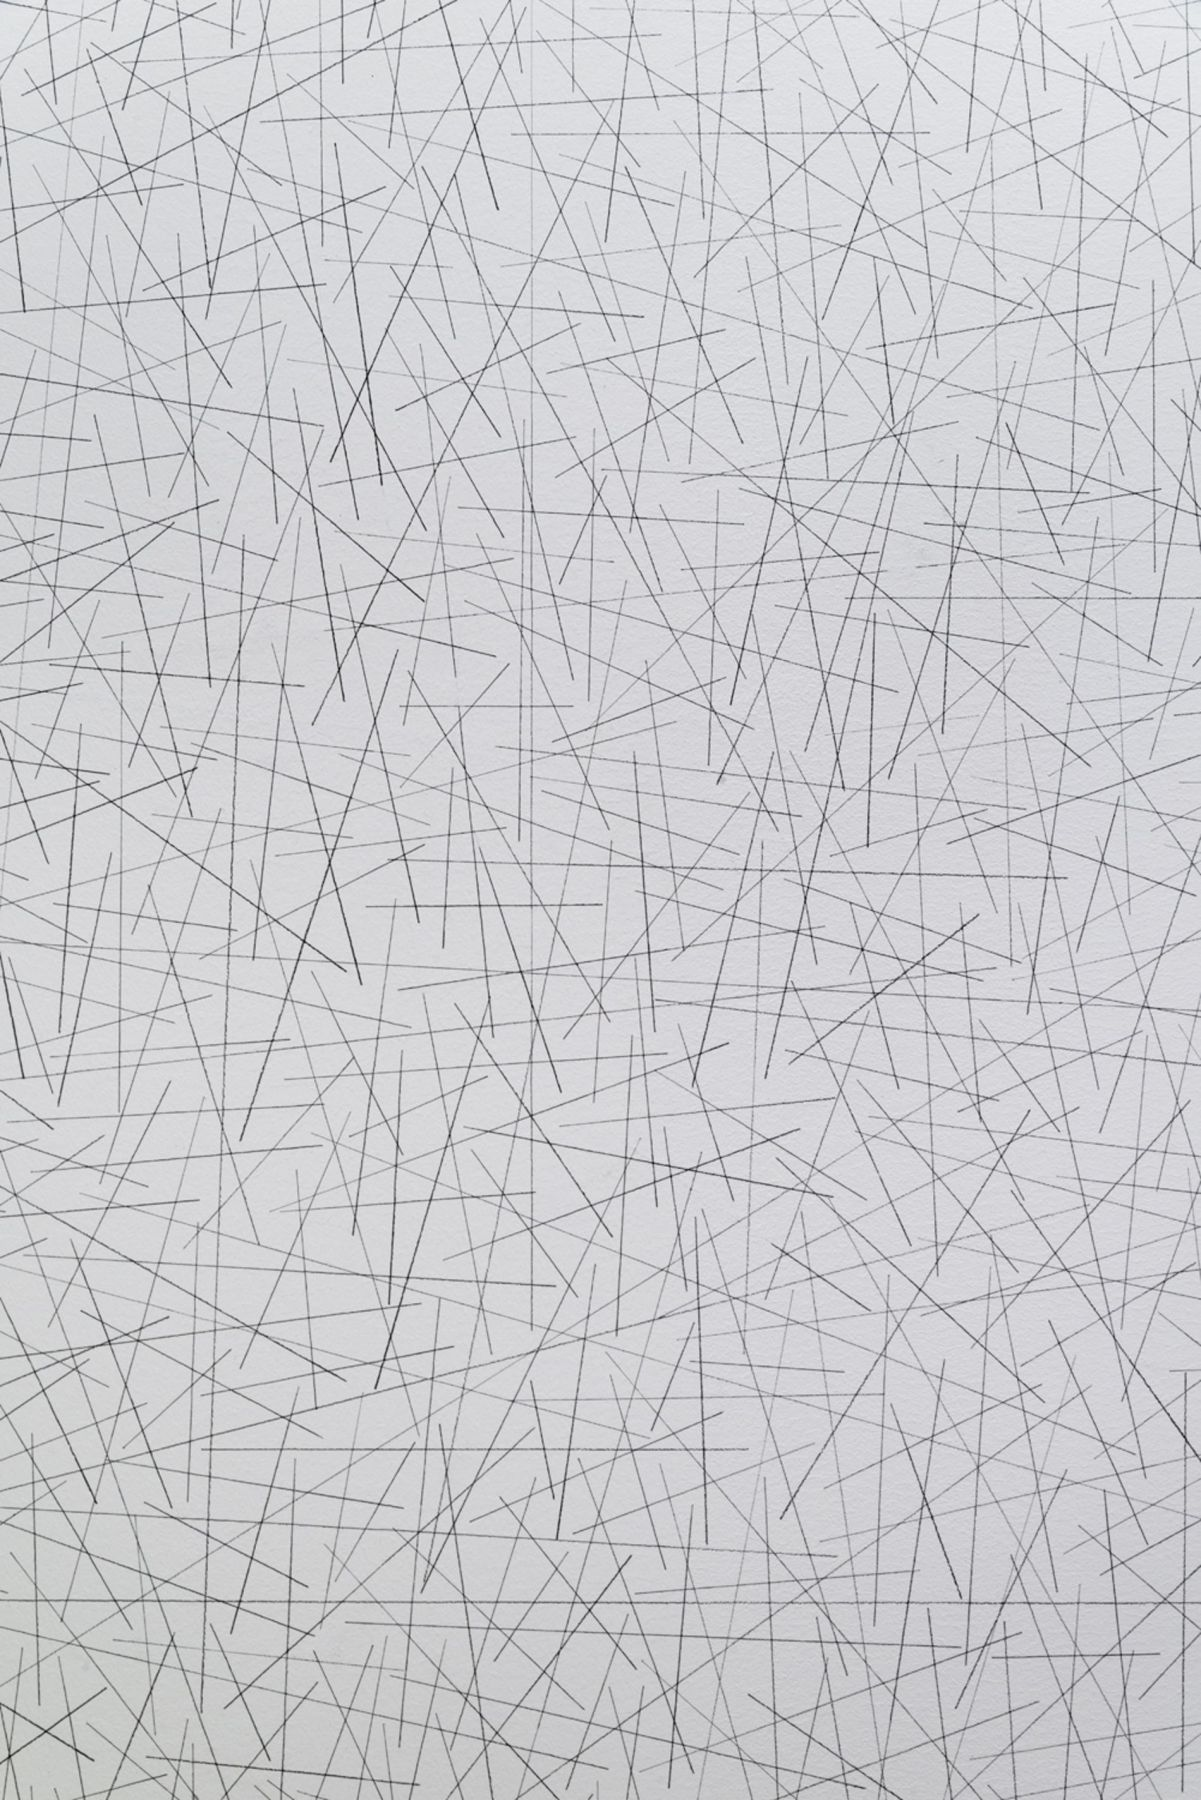 , SOL LEWITT Wall Drawing #59 (detail), 1970 Black pencil 120 x 120 in. (304.8 x 304.8 cm) Courtesy of the Estate of Sol LeWitt and Paula Cooper Gallery, New York